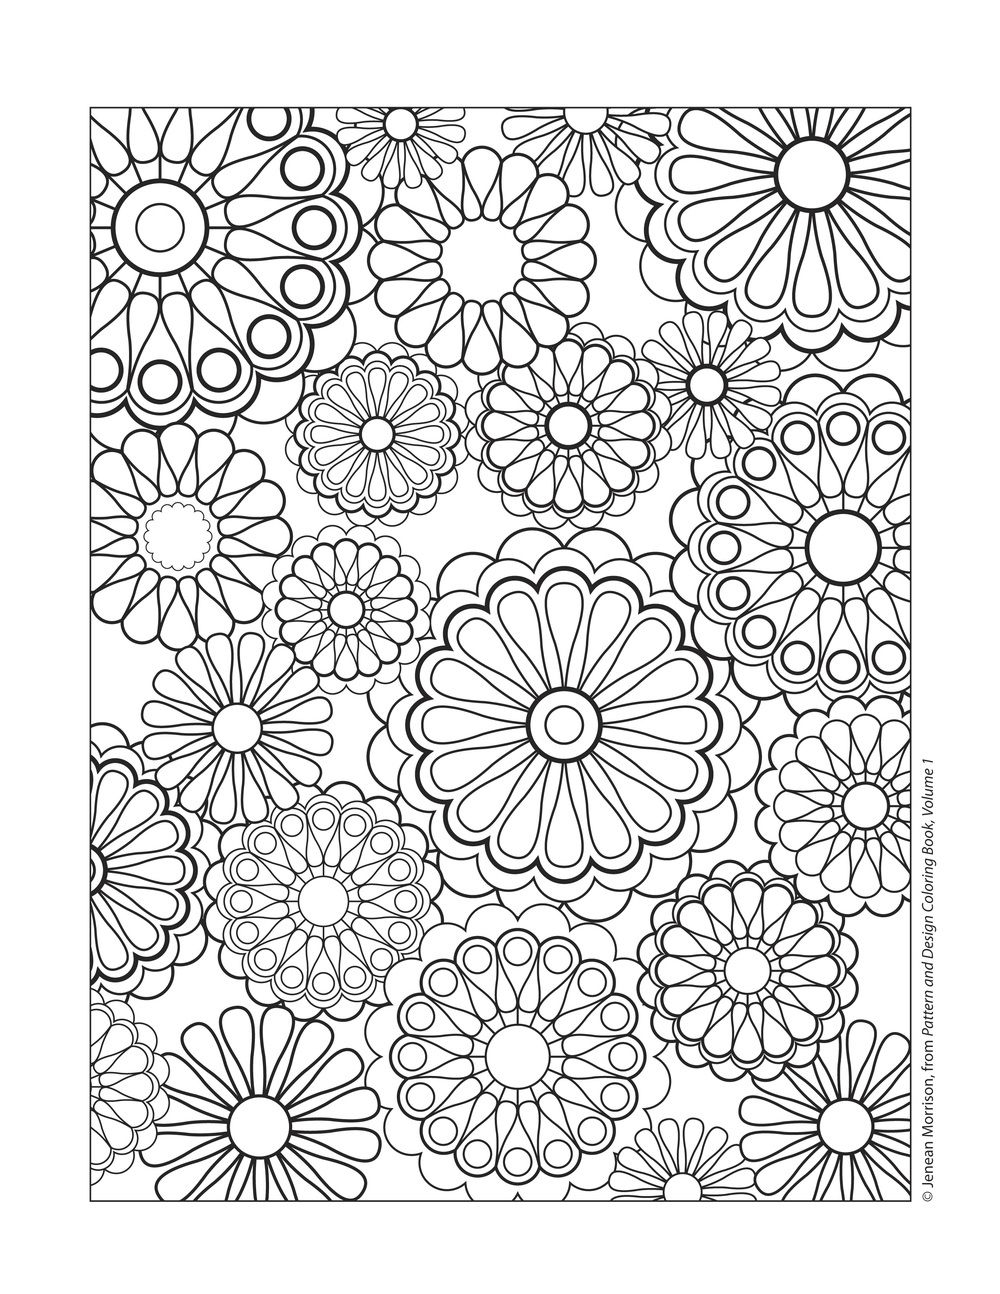 mindfulness coloring pages Download-adult coloring pages Google Search 19-f